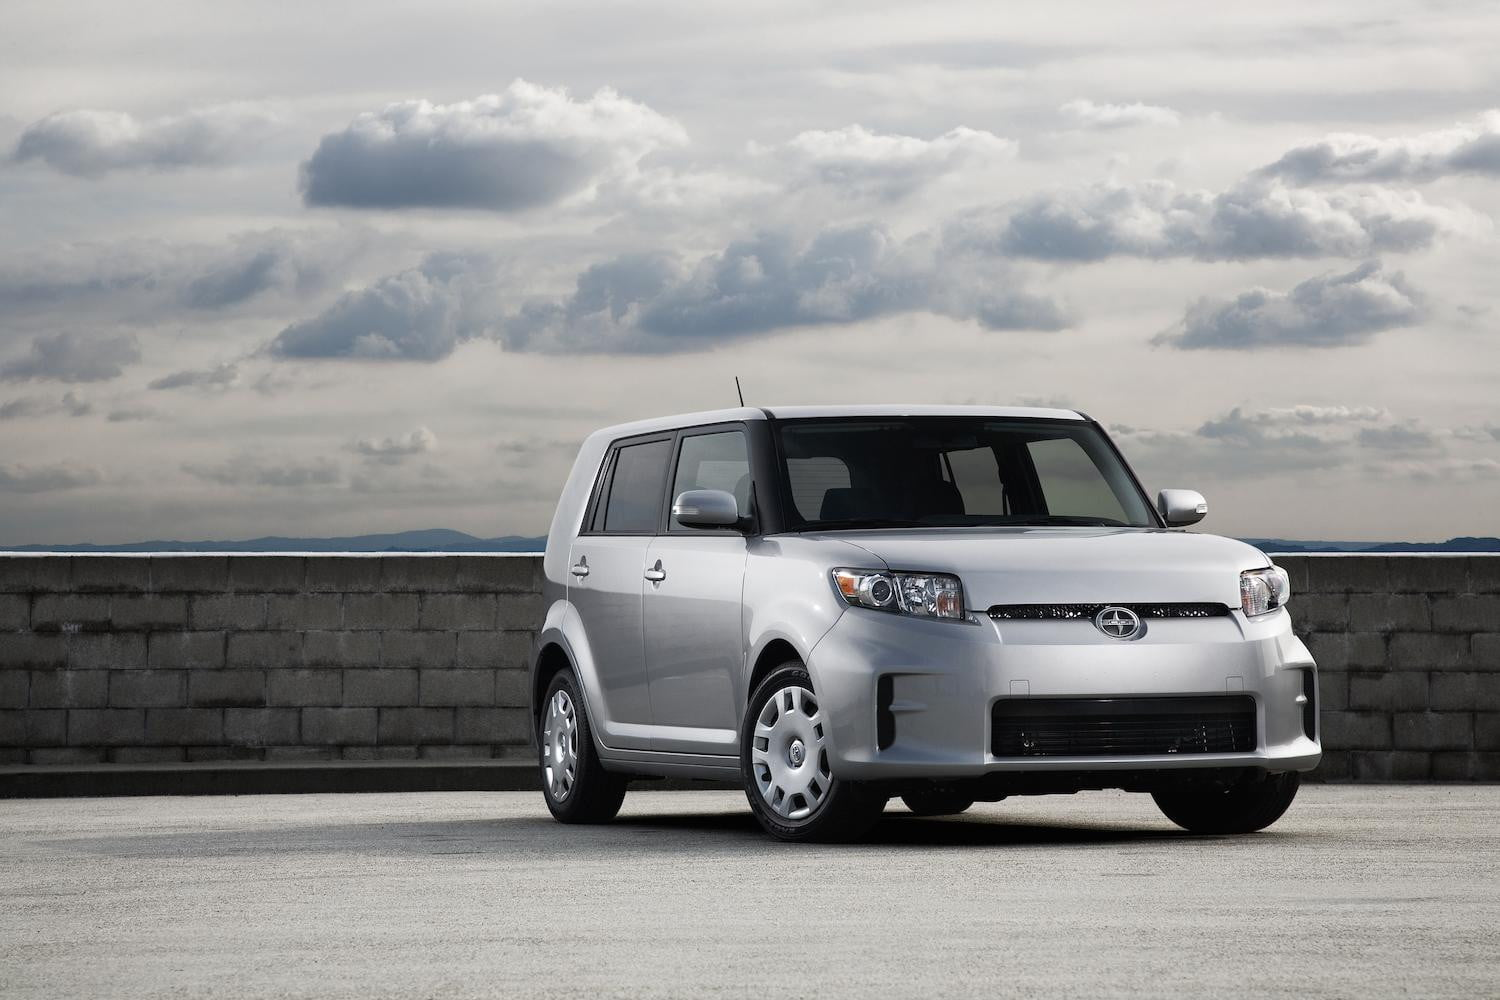 Toyota toyota cube : Scion to Discontinue the xB Wagon at the End of 2015 | Digital Trends